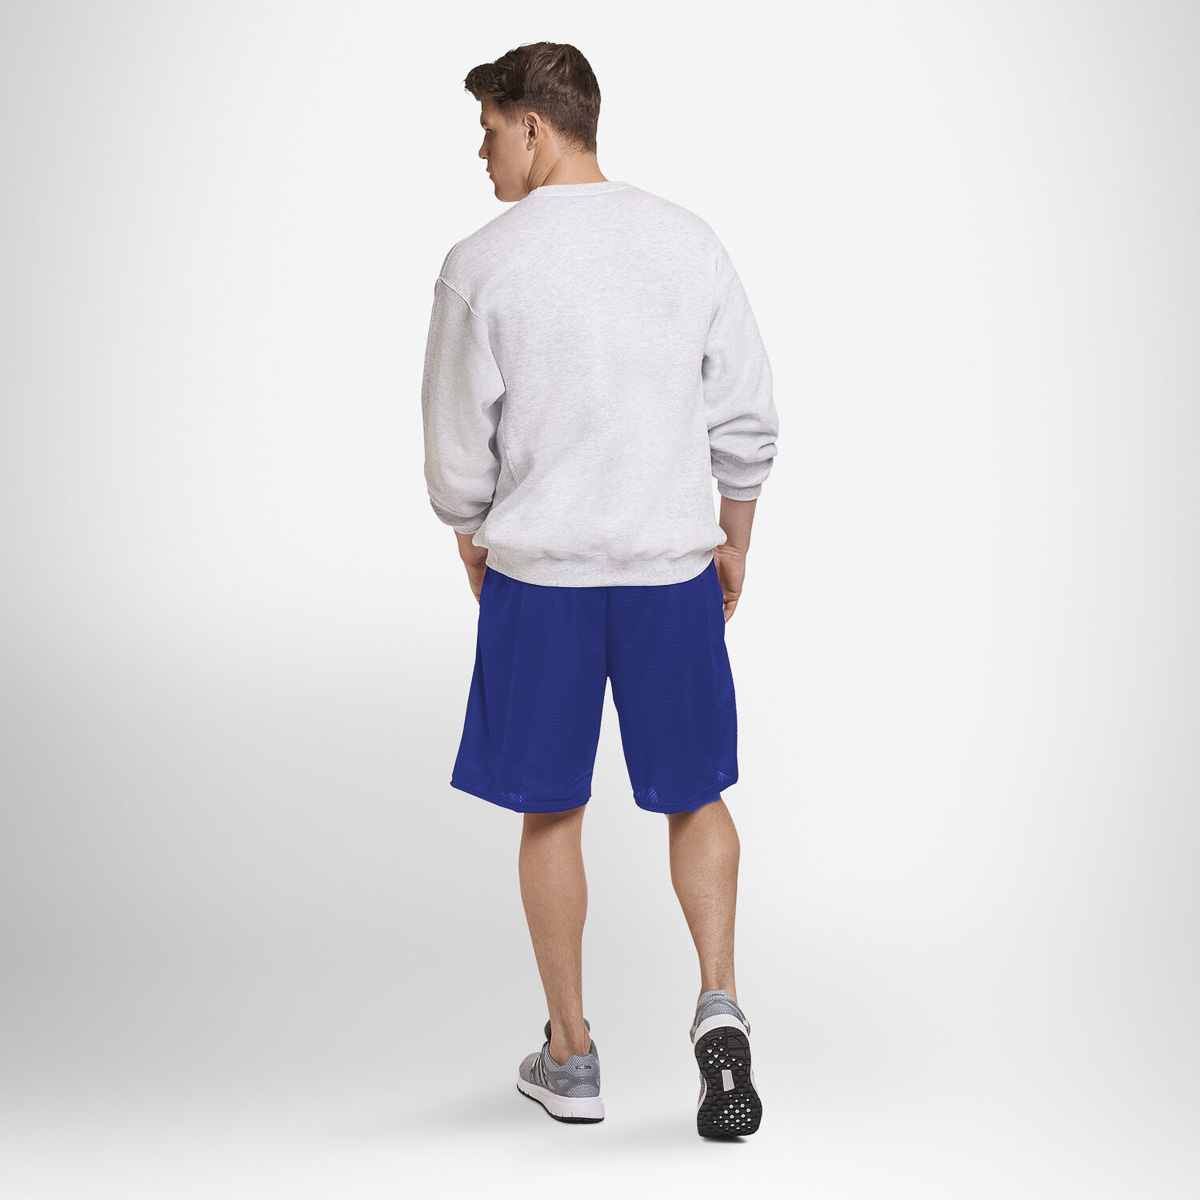 Russell-Athletic-Mens-Shorts-With-Pockets-Mesh-Moisture-Wicking-Gym-Activewear thumbnail 21